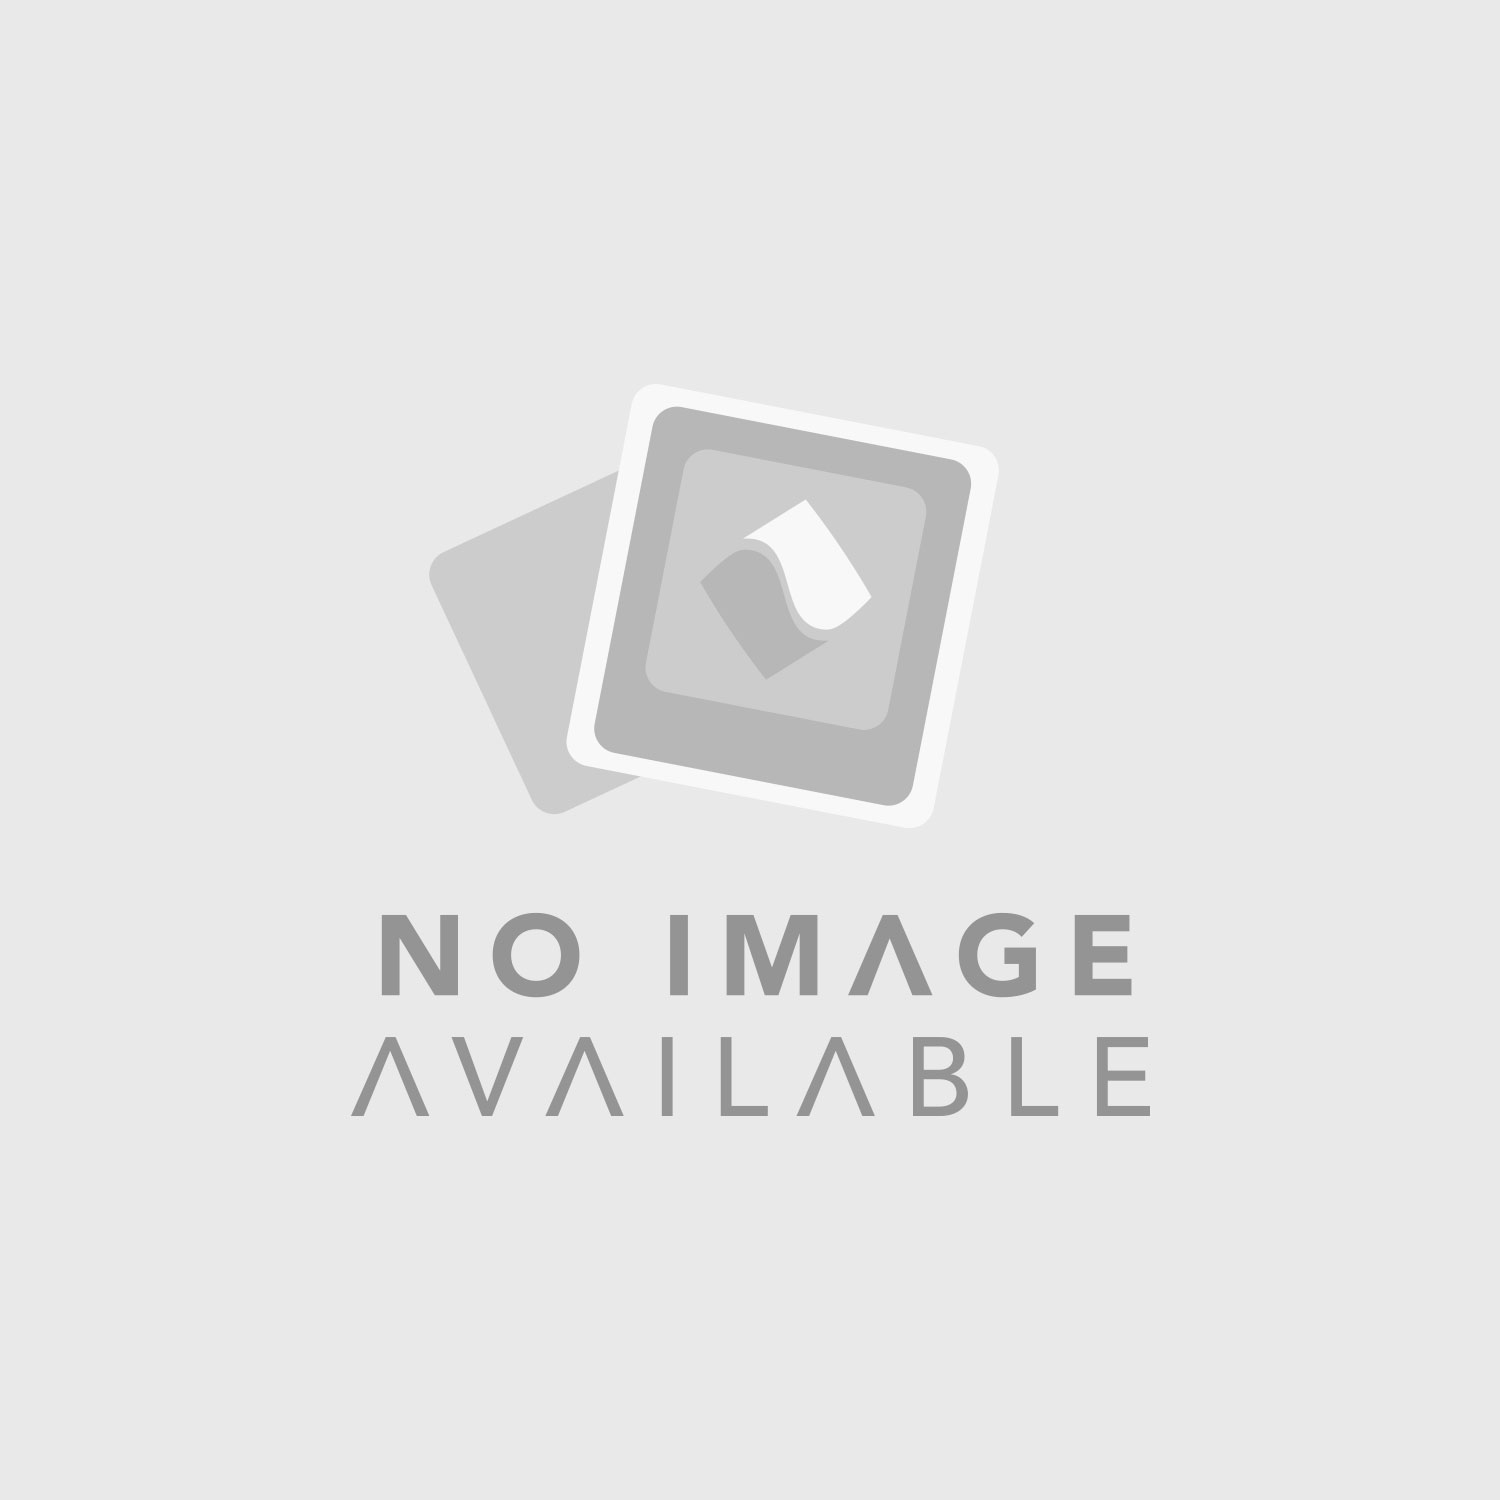 Martin THRILL Multi-FX LED - Laser, Multi-Beam, Strobe-Effect Lights